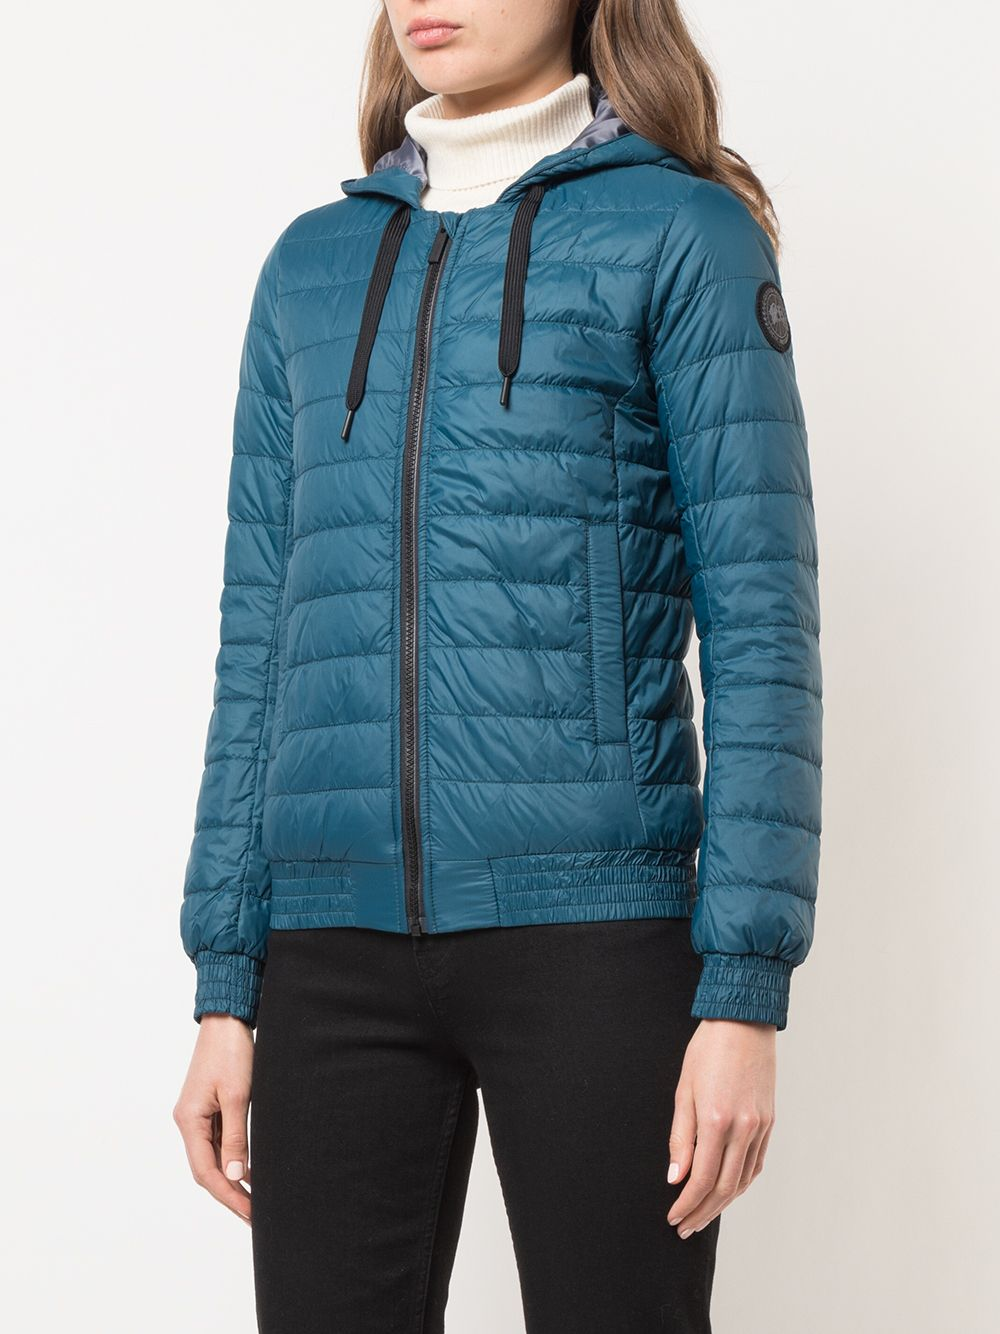 CANADA GOOSE WOMEN BLACK LABEL RICHMOND HOODY 2207LB 466